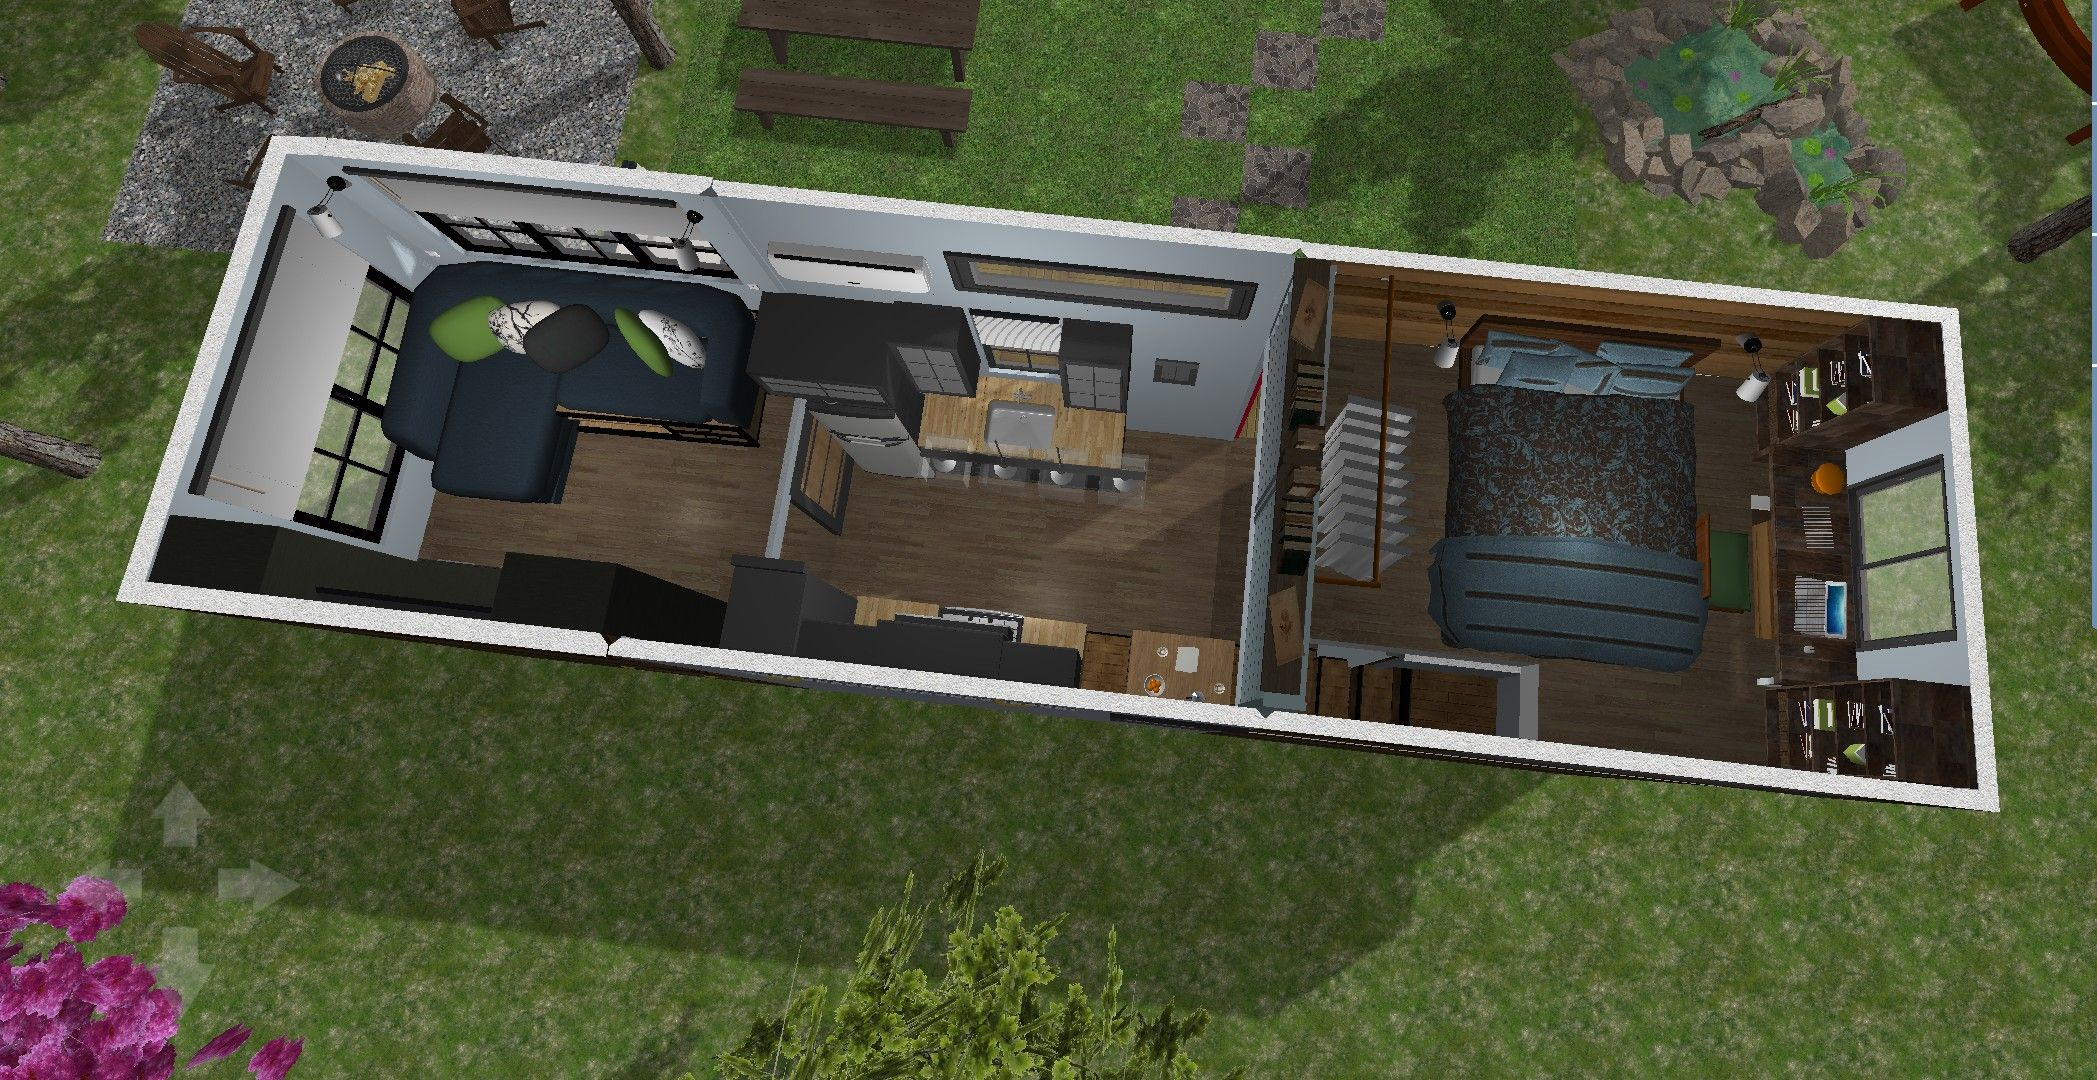 Tiny House Design Created Using Home Design 3D. 340 Square Feet On A 28u0027 ×  8.5u0027 Trailer. Two Bedroom, One Being A Reverse Loft, A Full Kitchen And One  Large ...